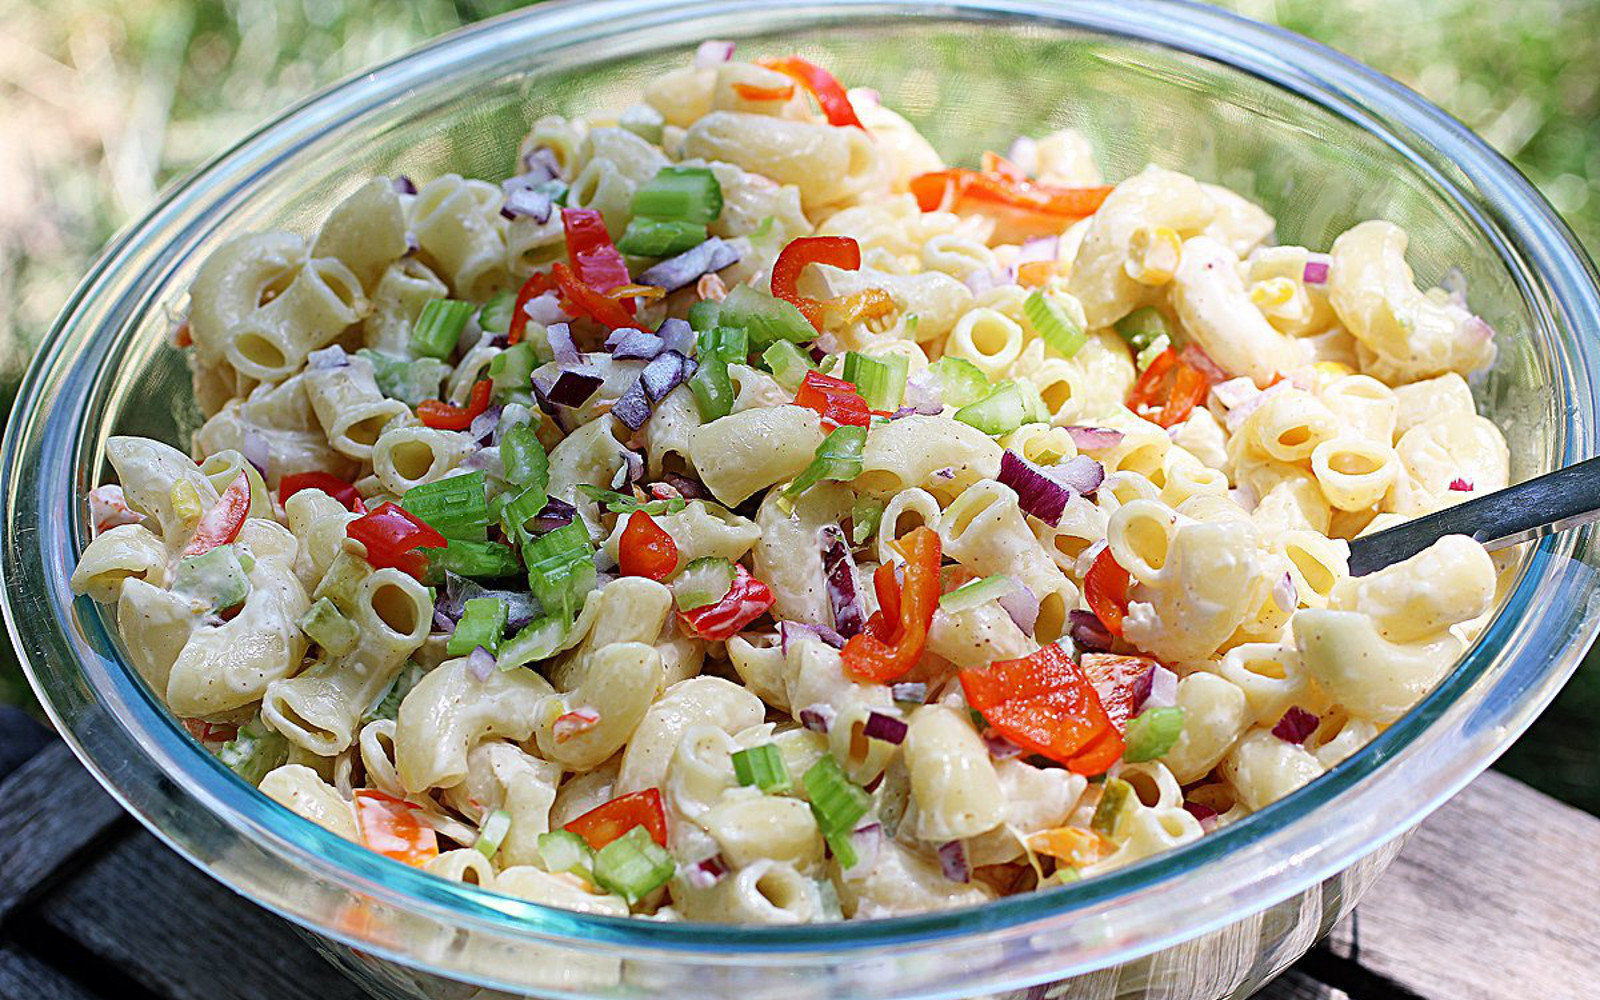 Simple Summer Macaroni Salad